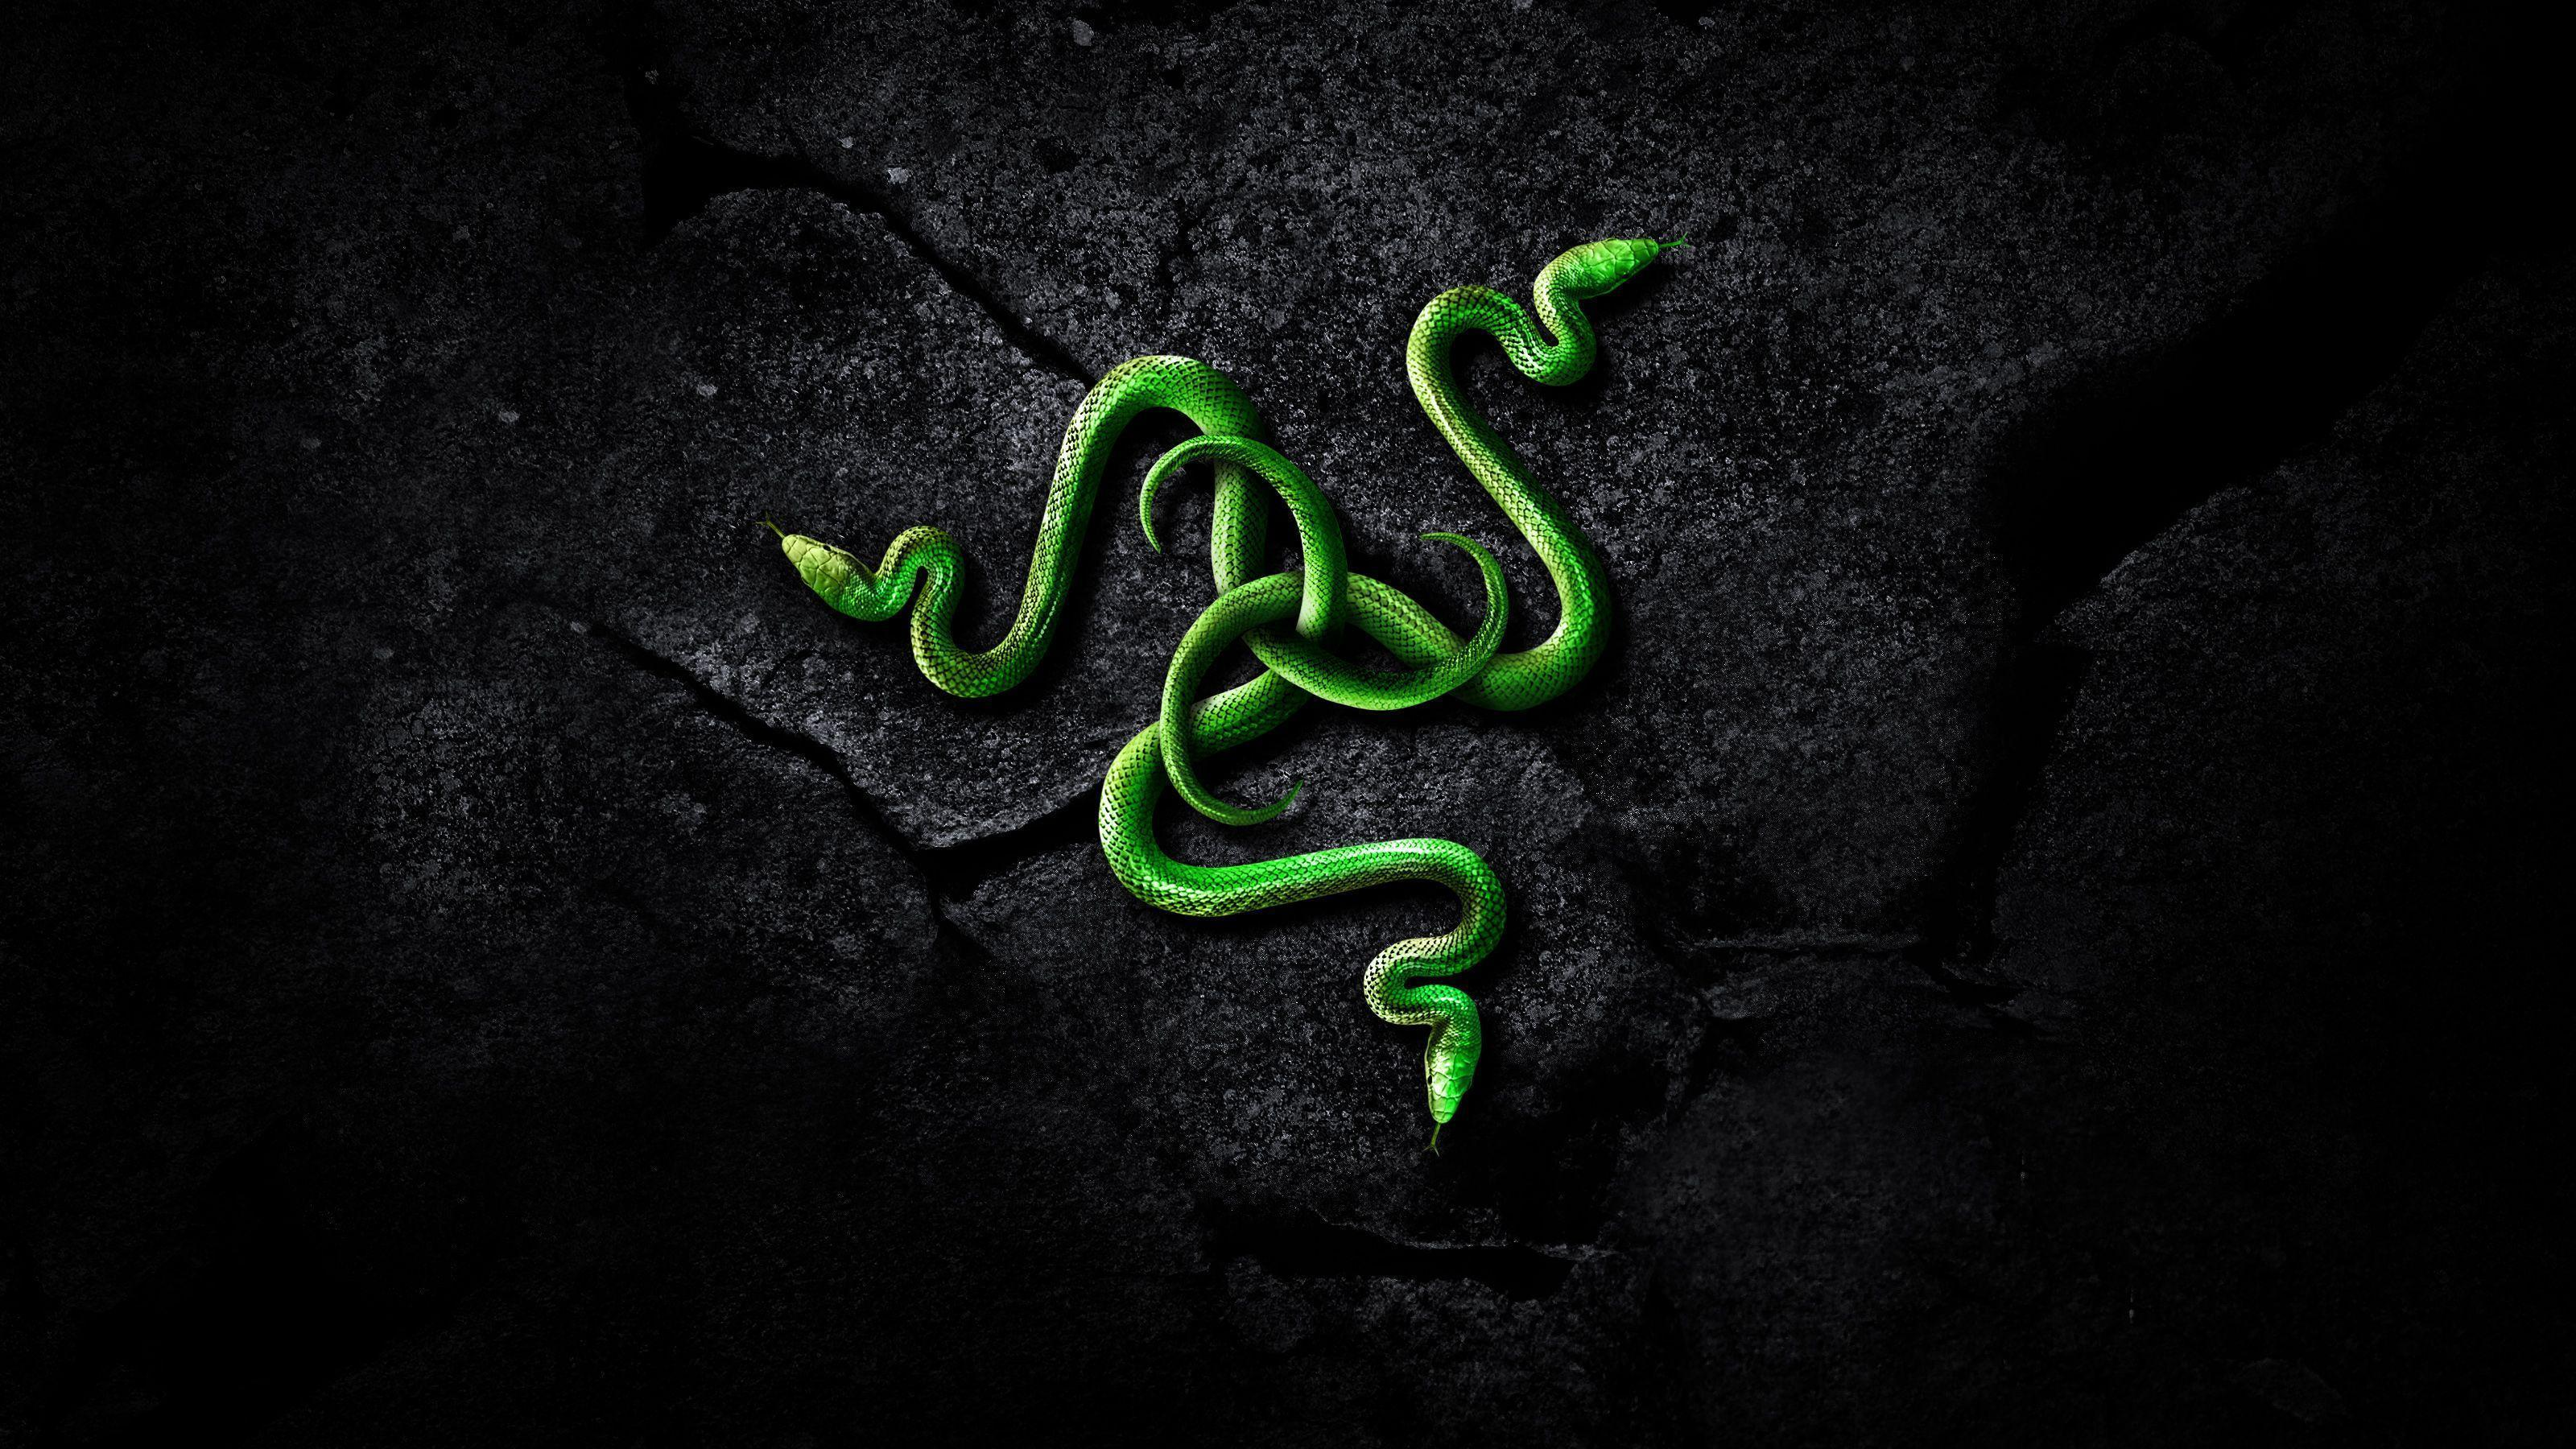 razer rainbow wallpaper